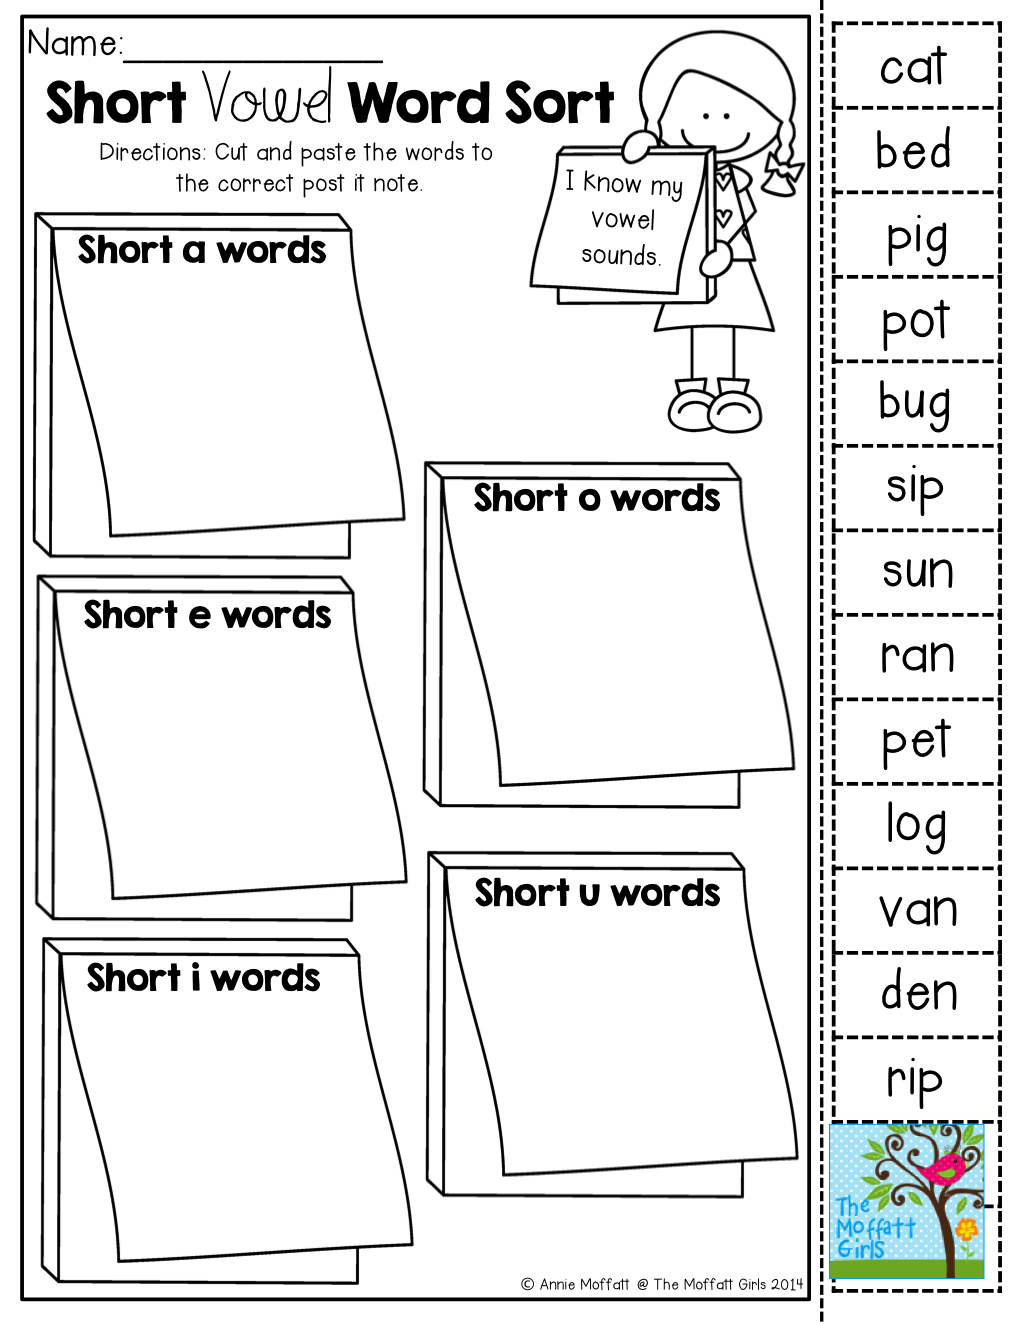 Workbooks short vowel a worksheets kindergarten : Short vowel word sort (cut and paste)! TONS of Back to School ...